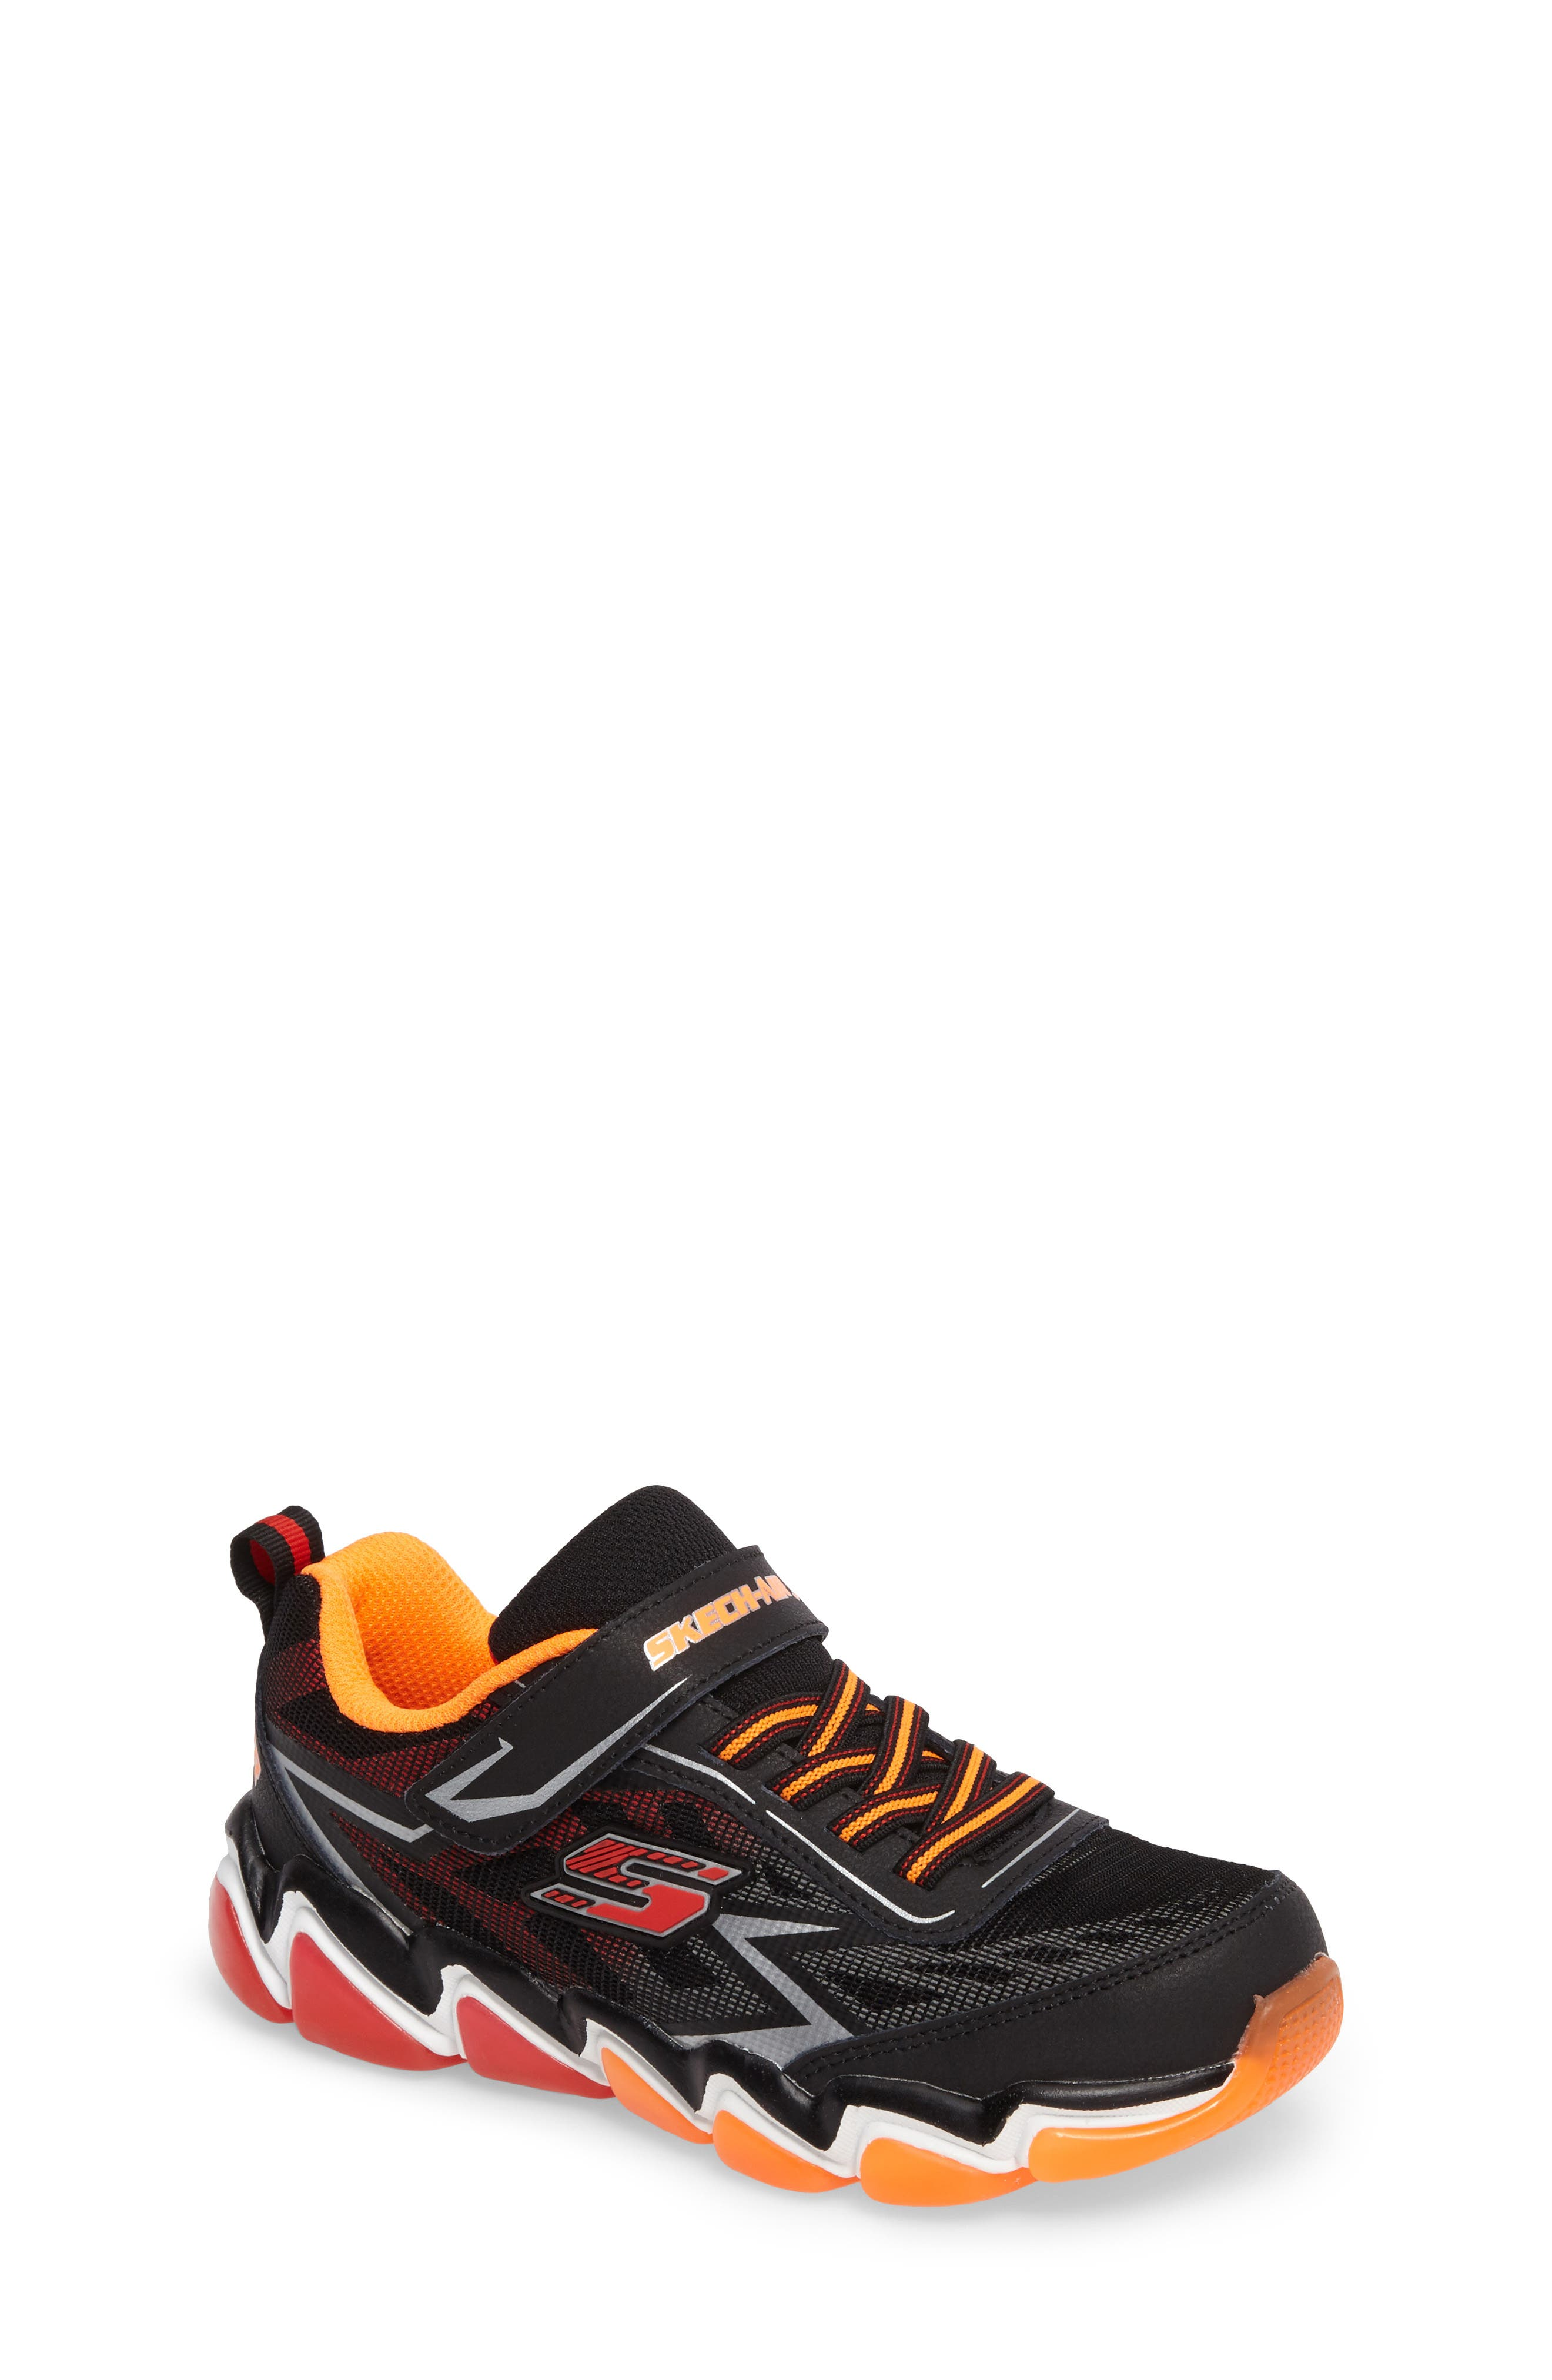 Skech-Air 3.0 Downswitch Sneaker,                             Main thumbnail 1, color,